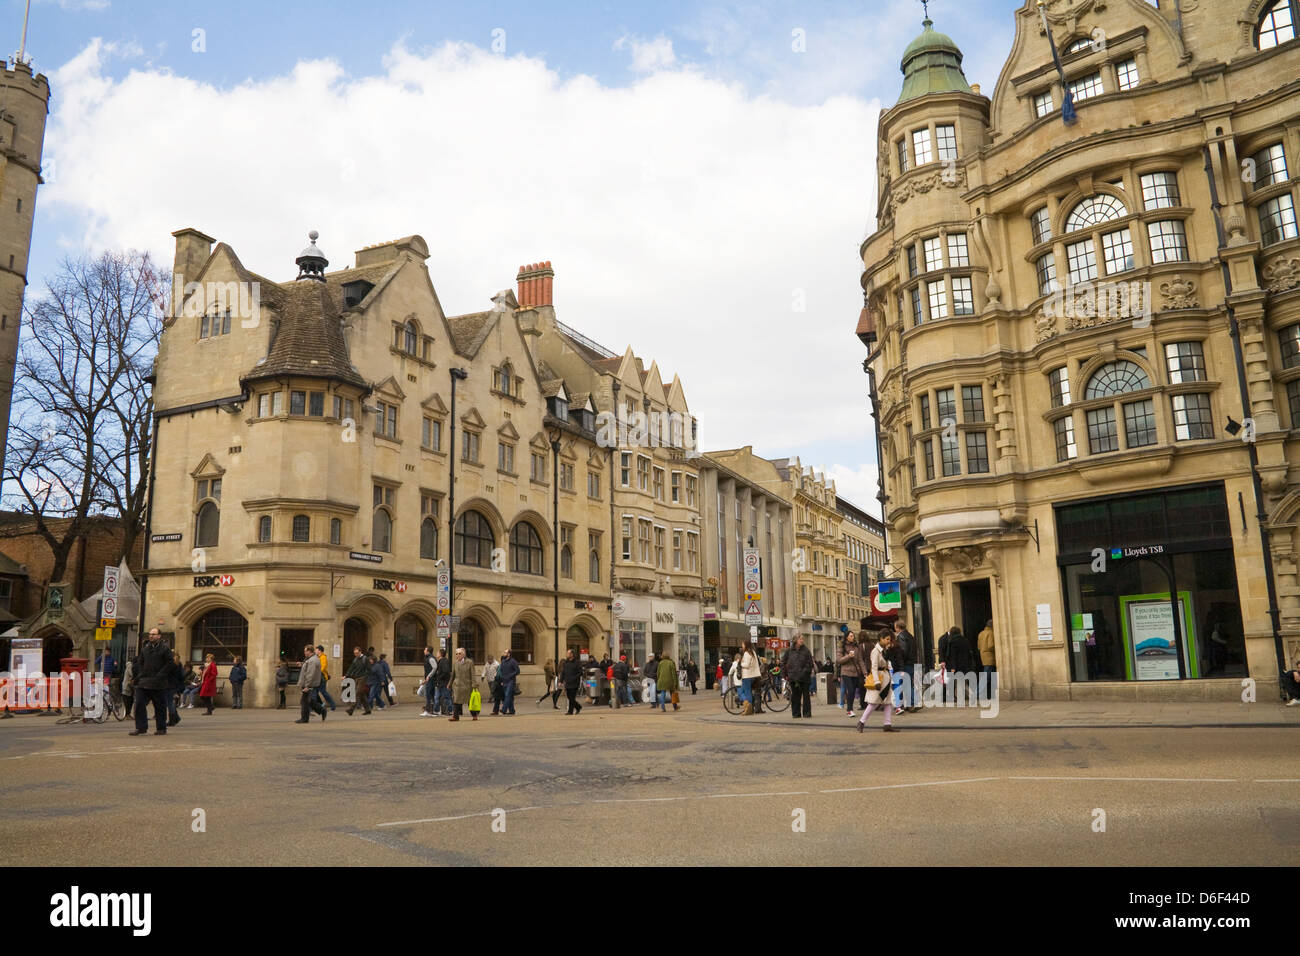 Oxford Oxfordshire HSBC and Lloyds Bank in historic